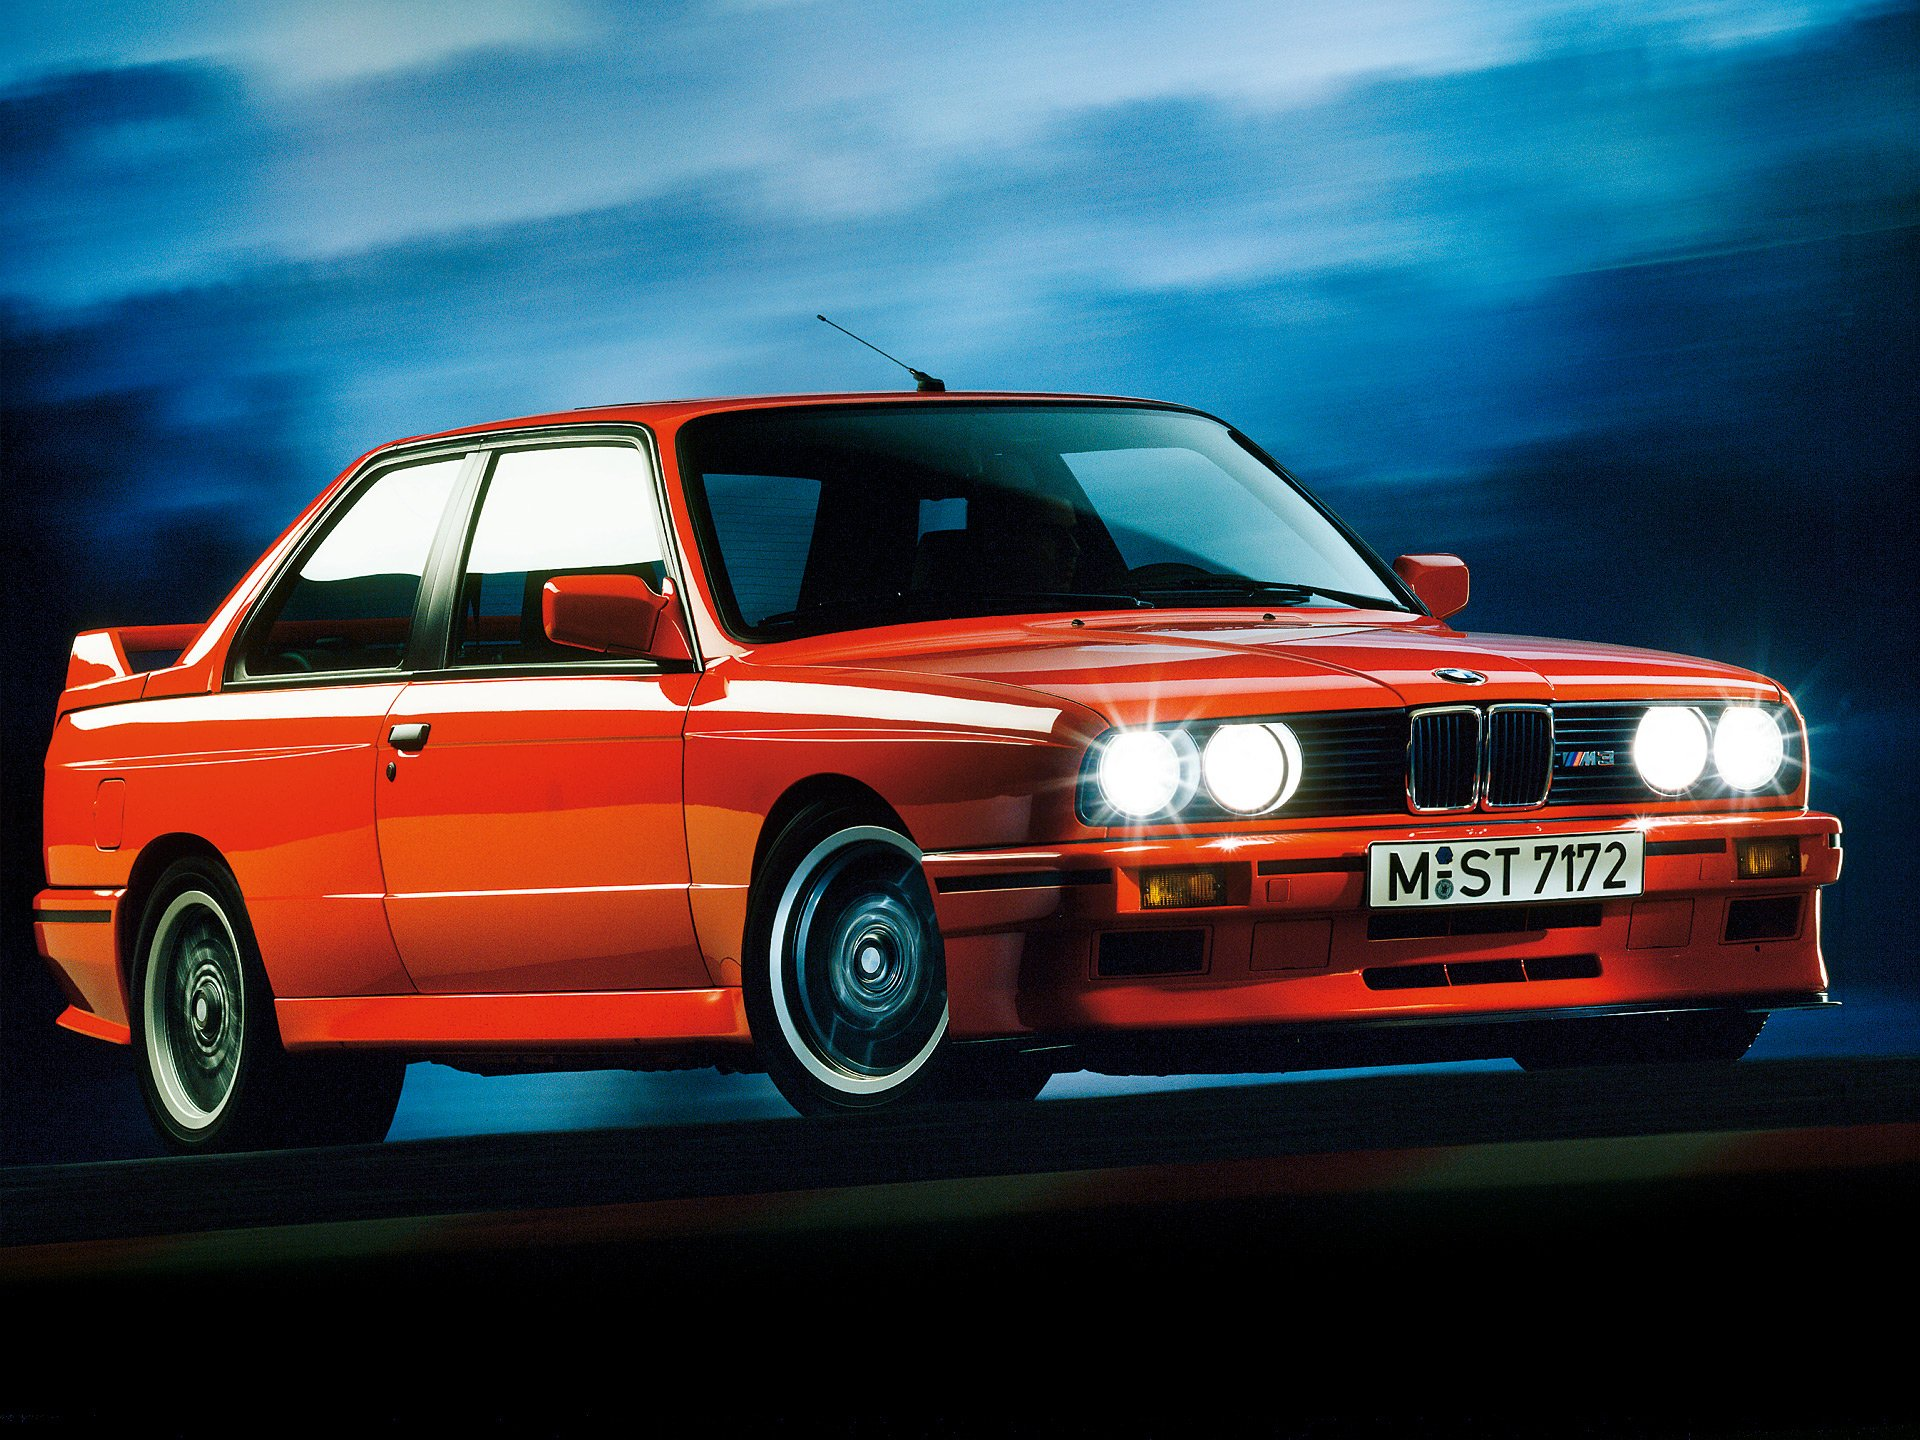 Bmw M3 E30 86 1920x1440 Wallpaper Teahub Io